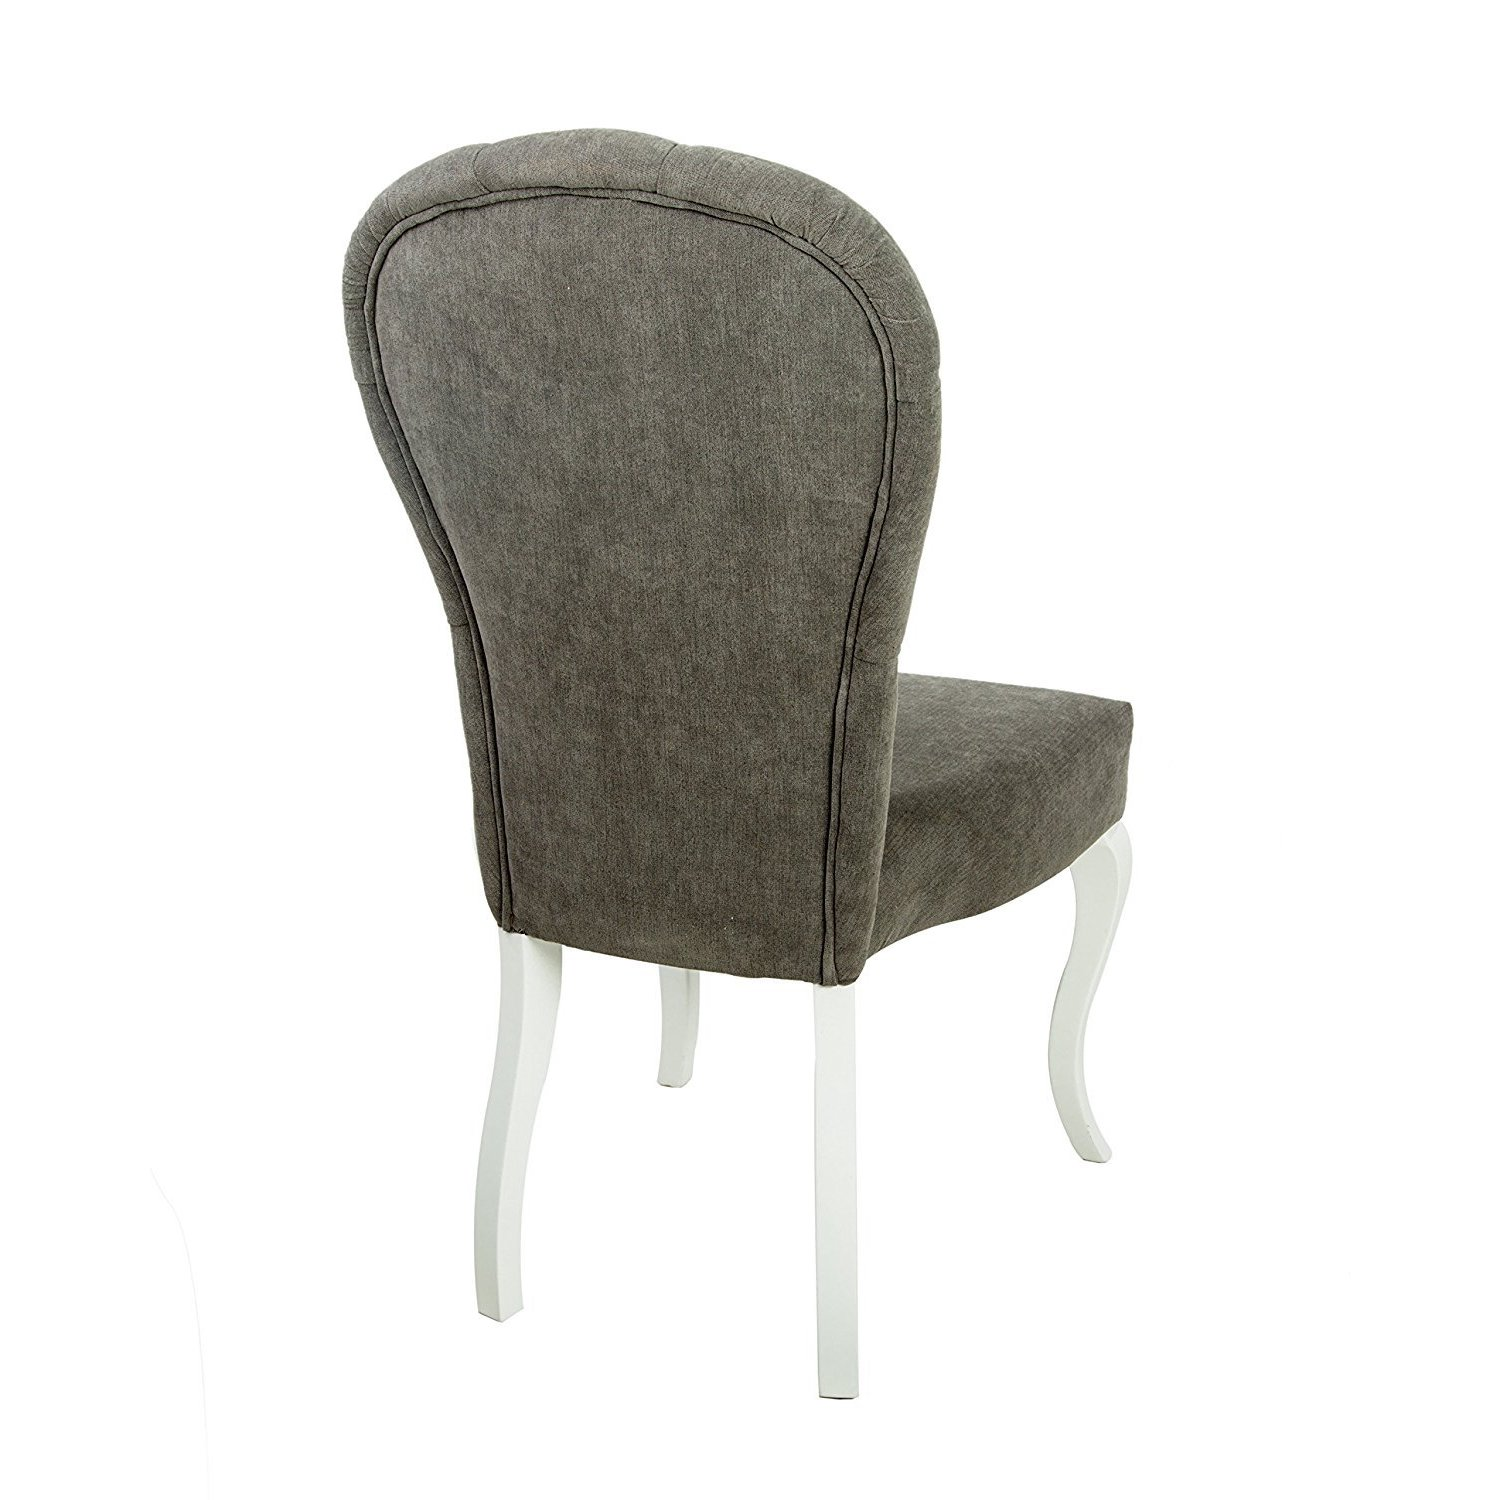 Decor Zone Number One Tufted Upholstered White Lacquer Legs Dining Chair Set Of 2 Overstock 13767201